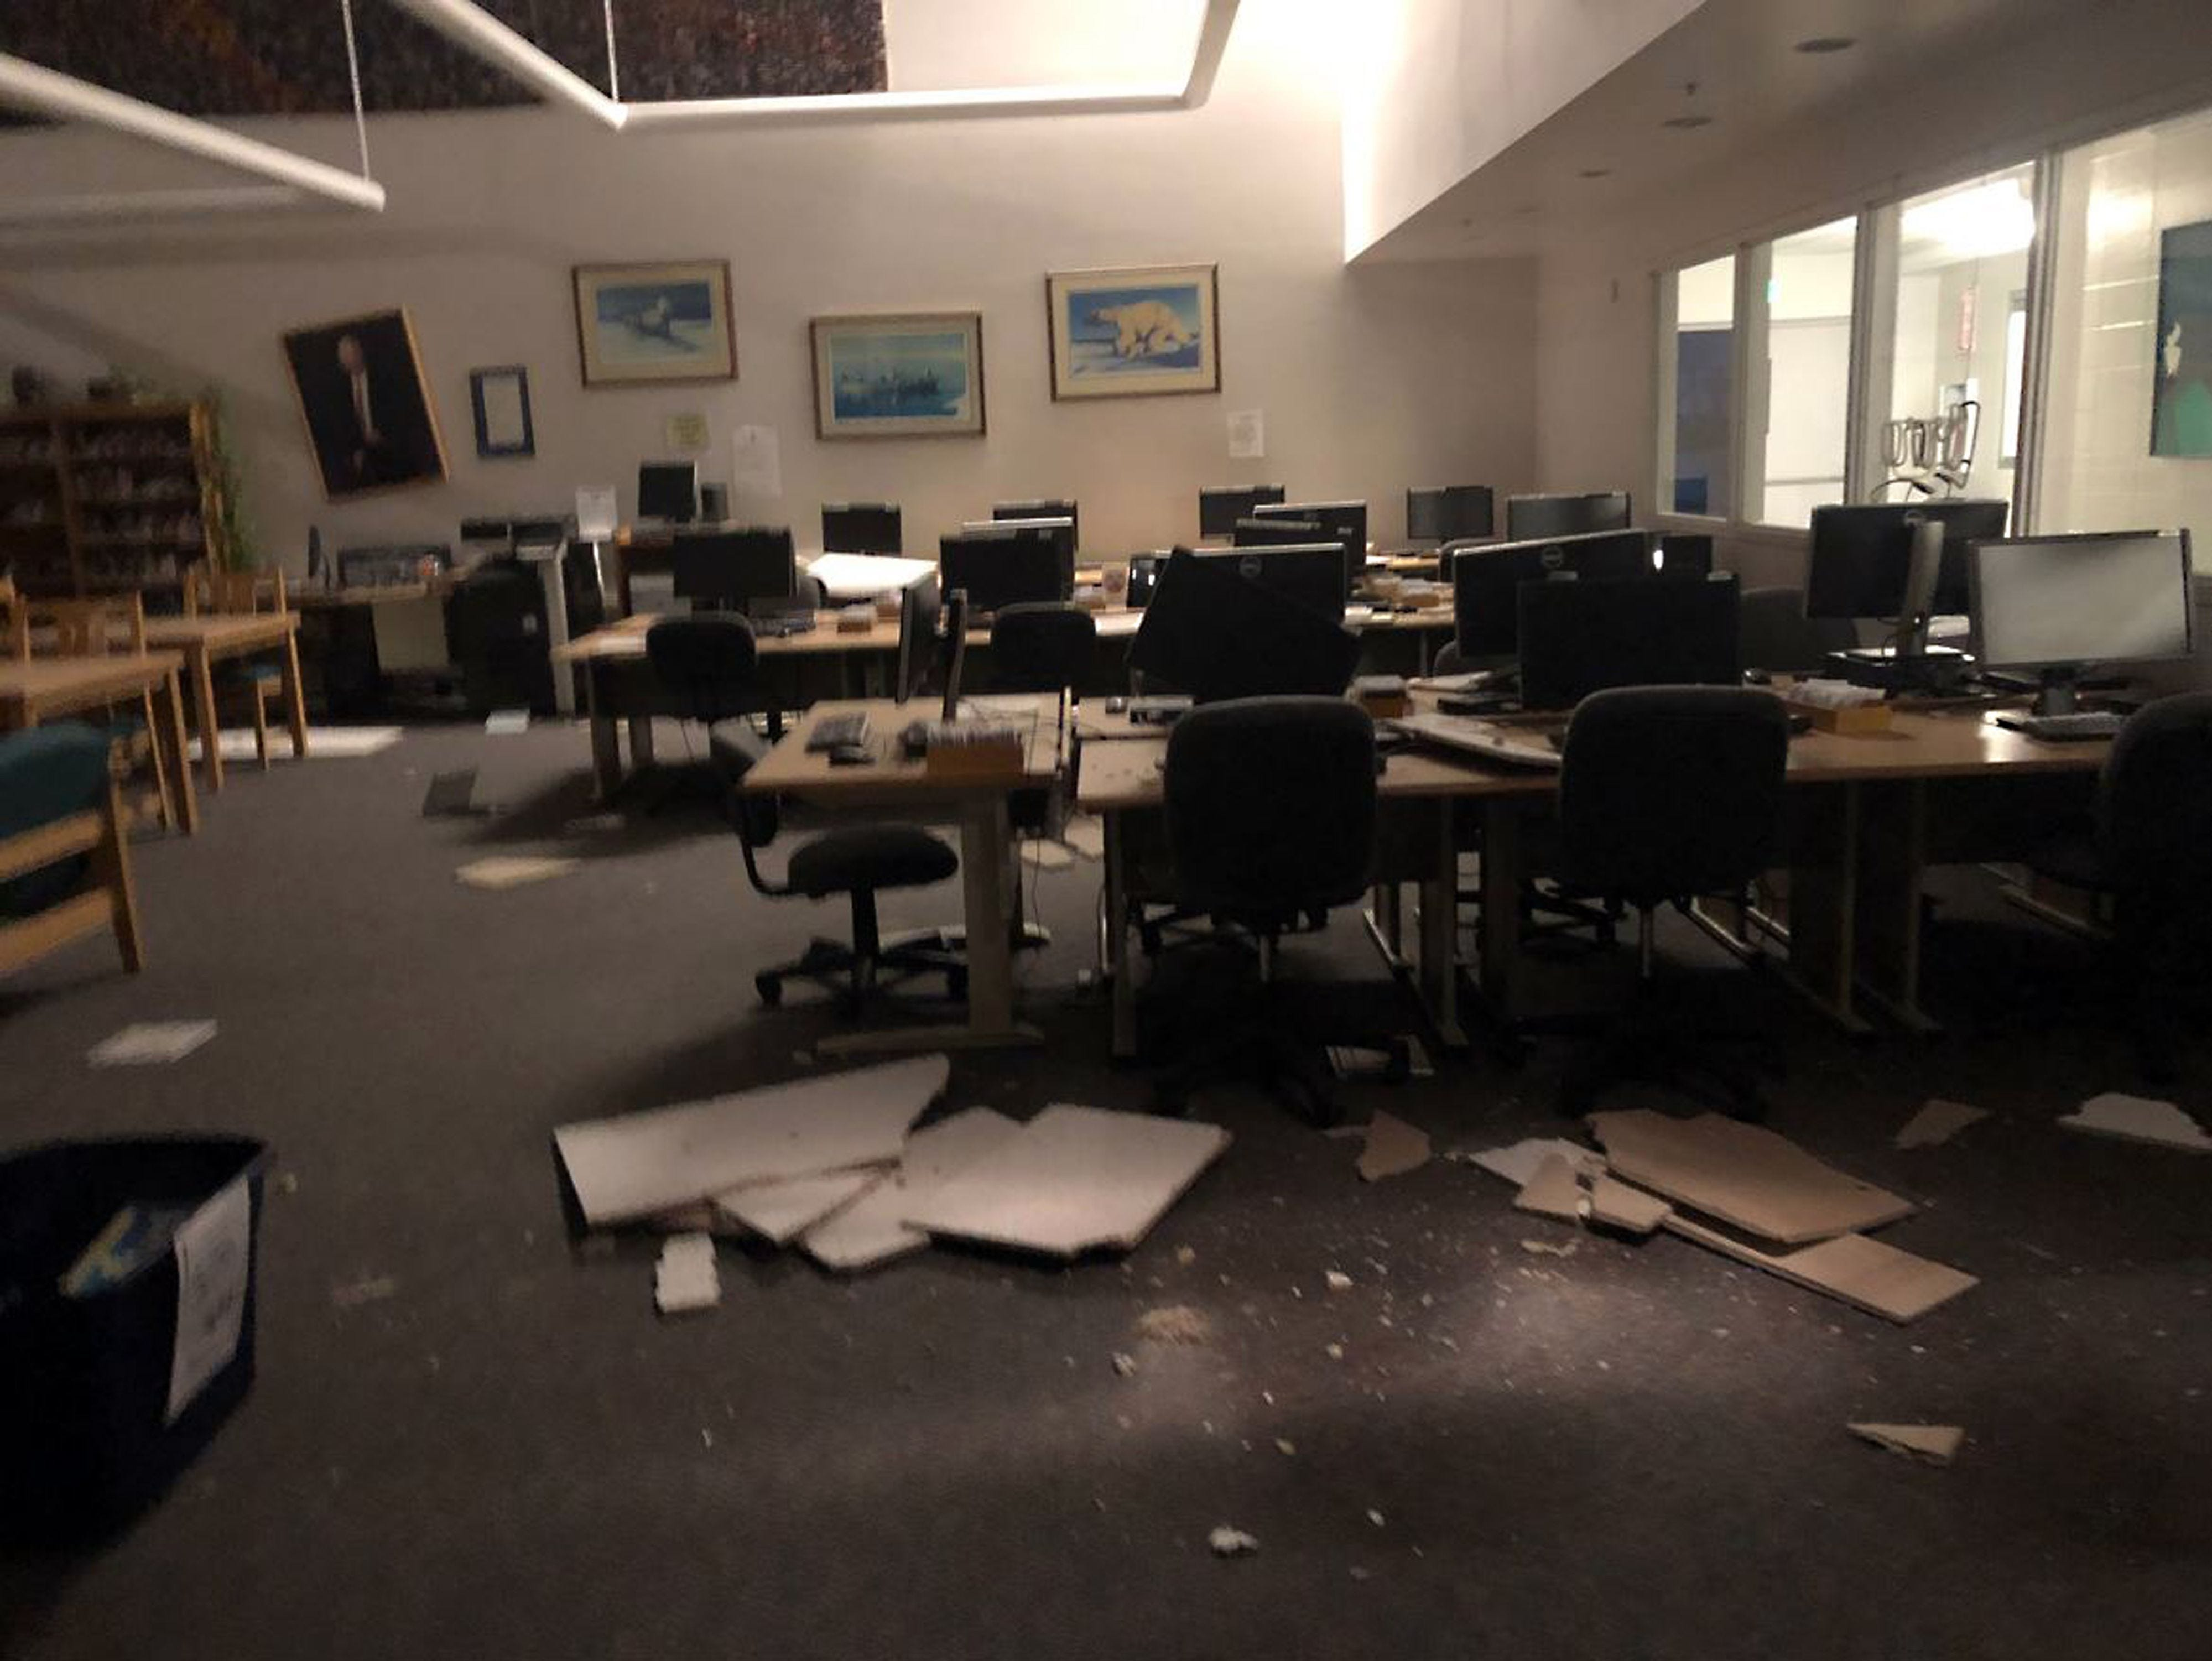 Books and ceiling tiles litter the floor at the The Mat-Su College library in Anchorage, Alaska, on Nov. 30, 2018, after a 7.0 magnitude earthquake.